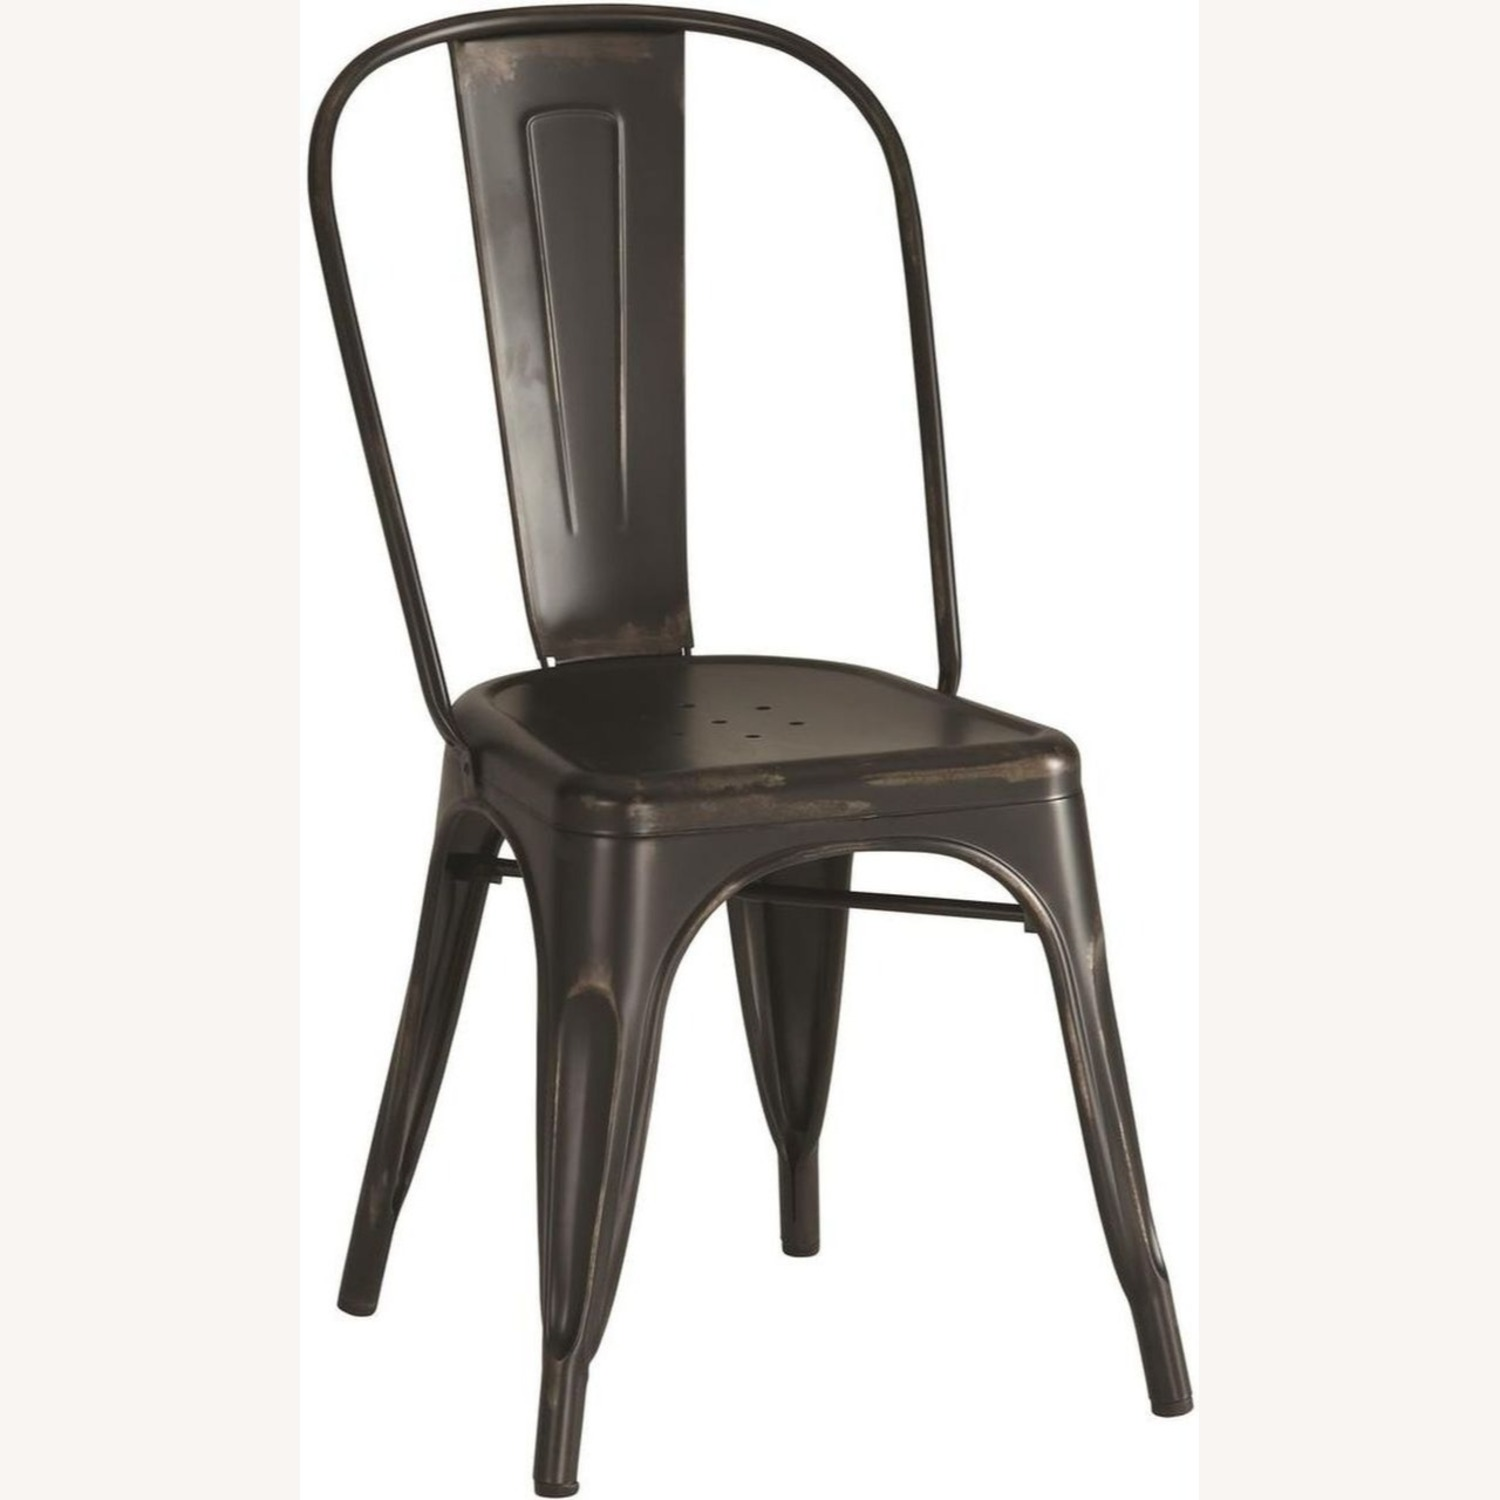 Charming Dining Chair In Black Metal - image-0